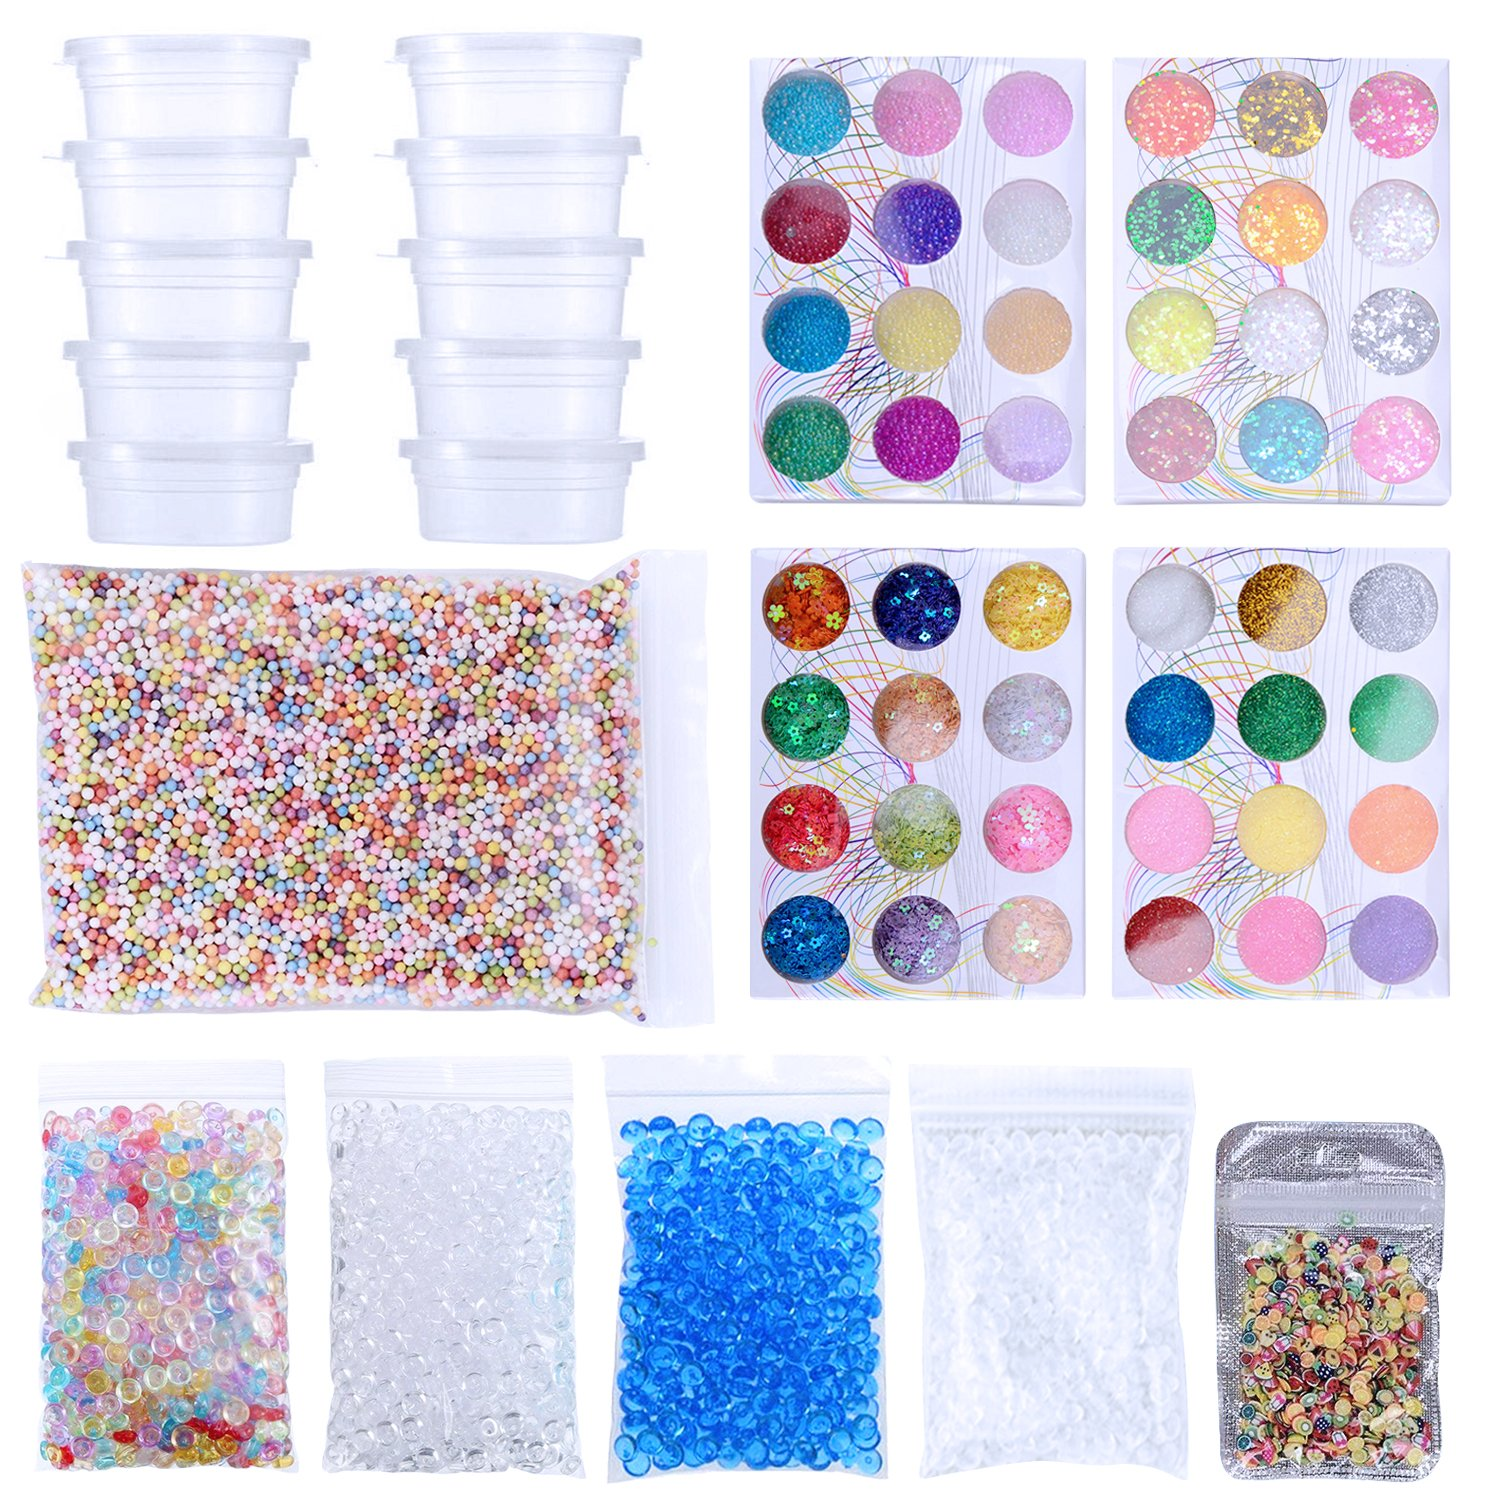 Slime Supplies Kit